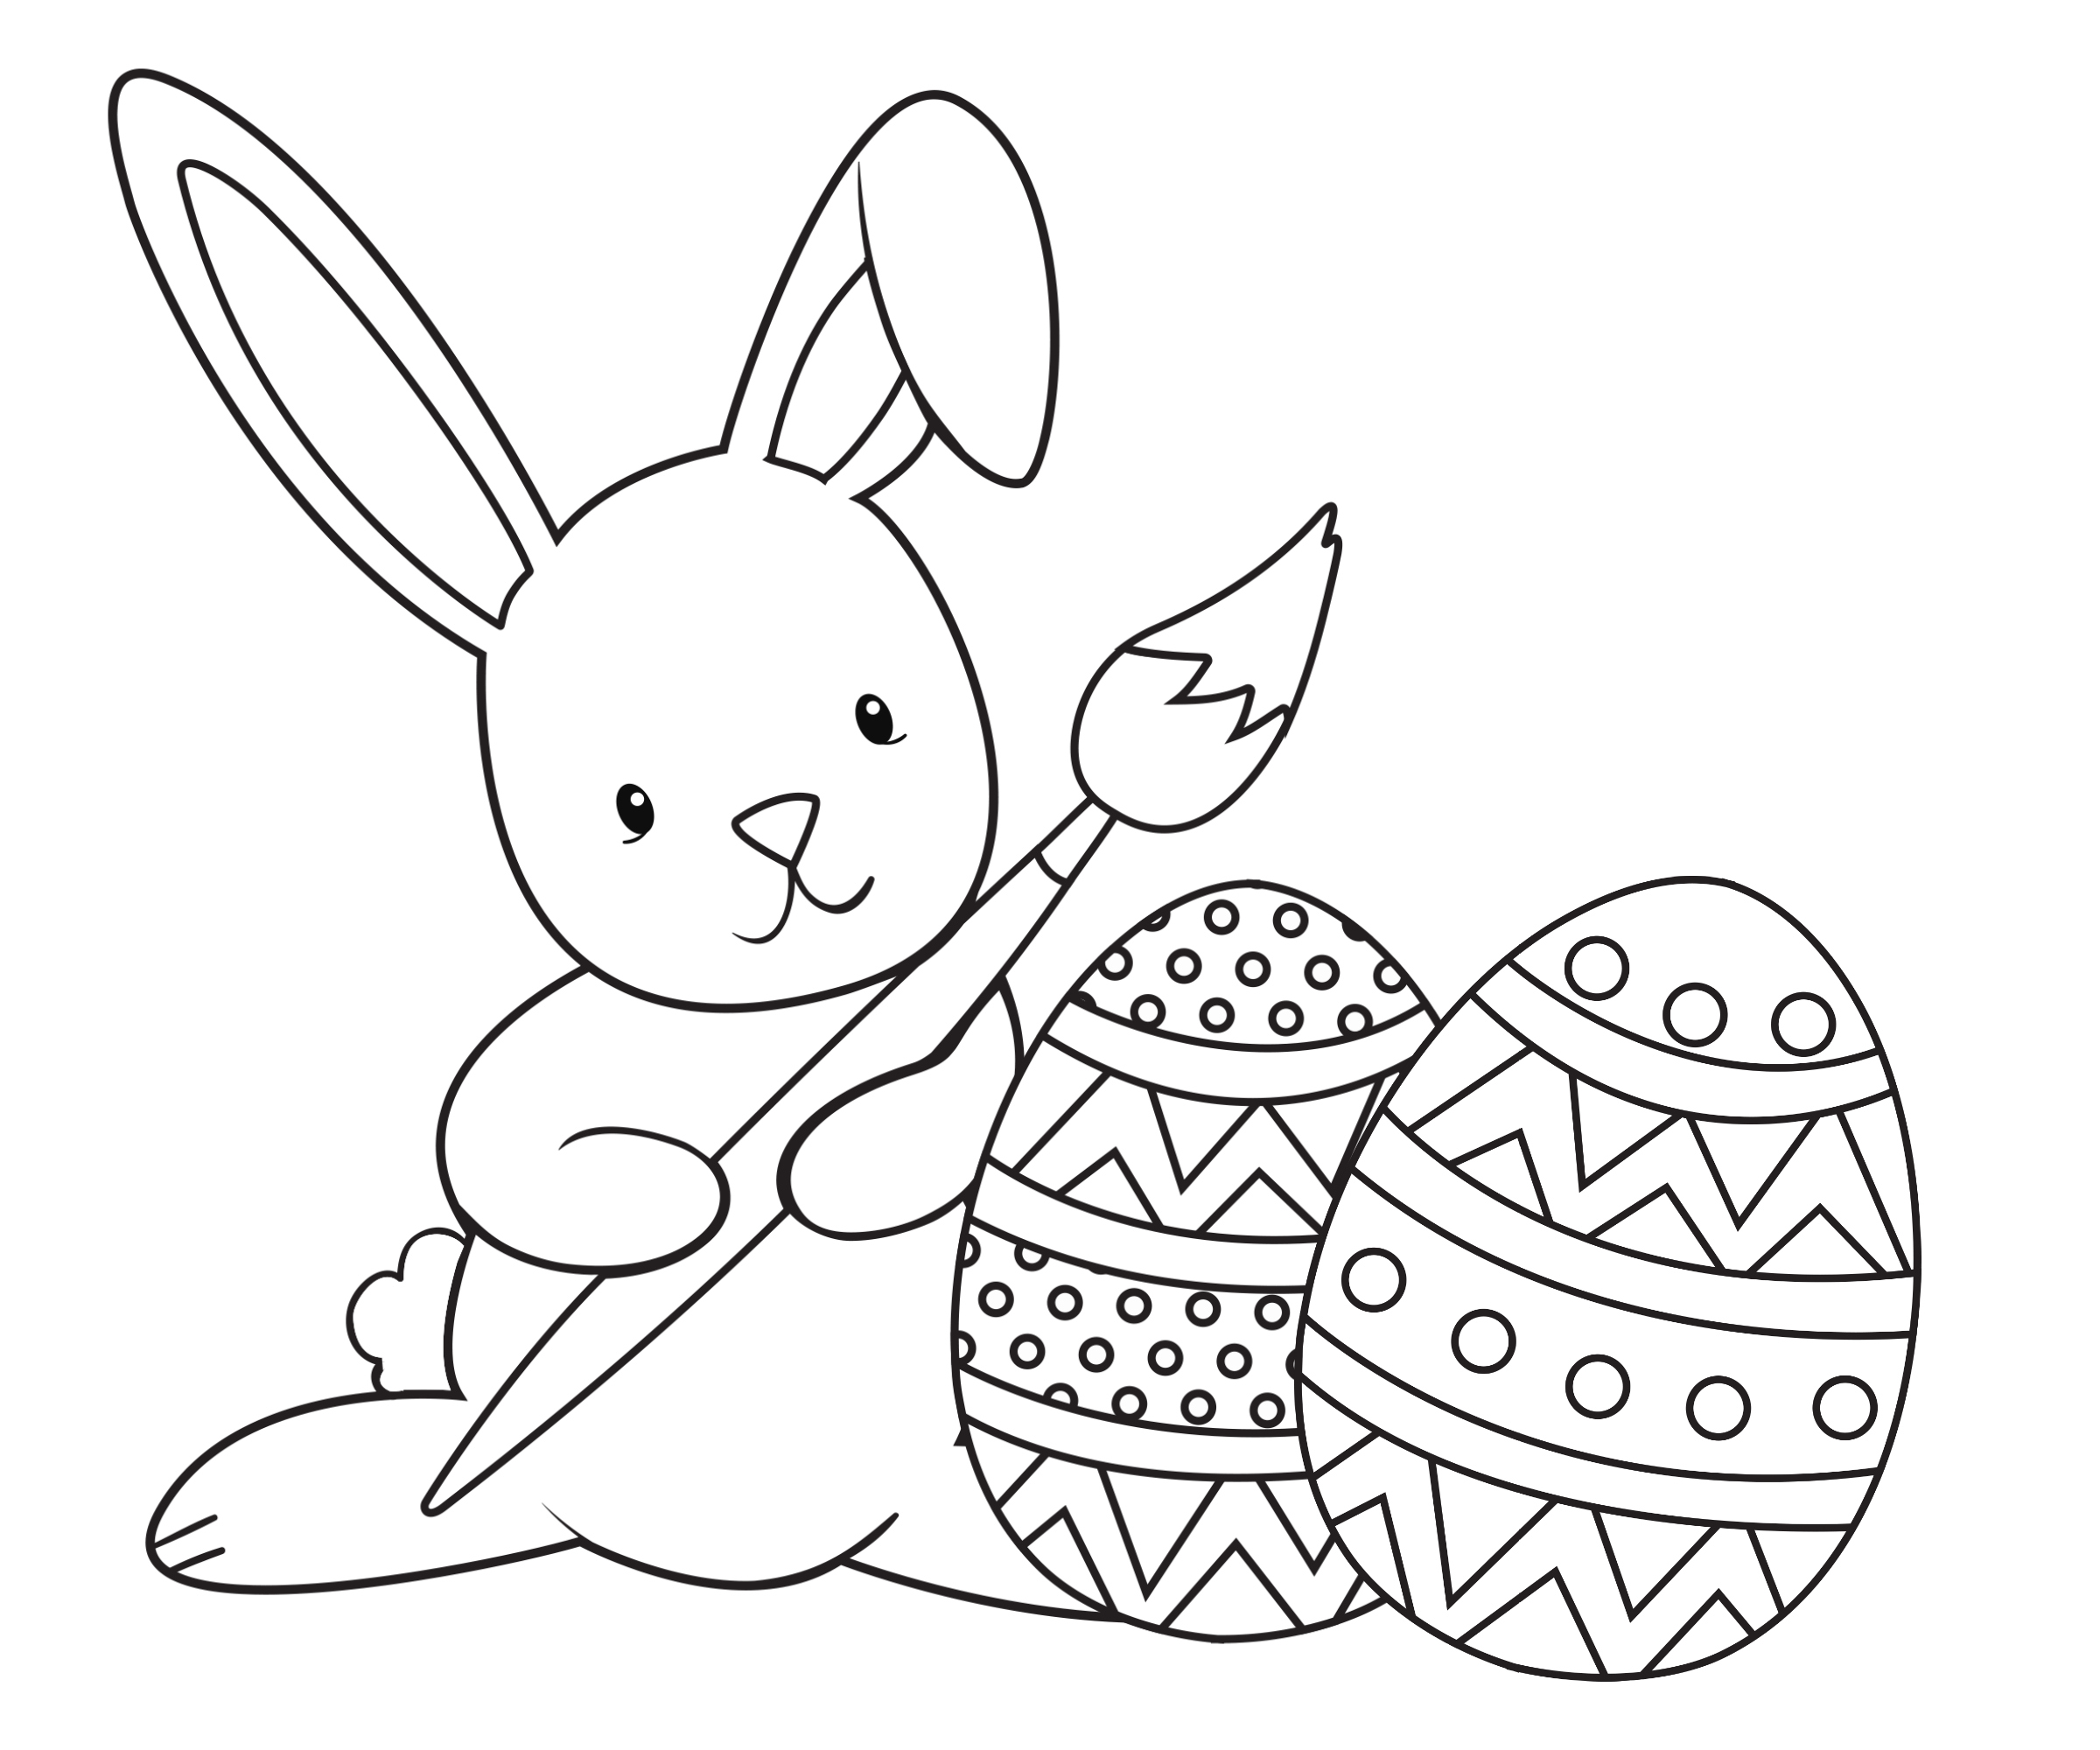 Easter Coloring Pages for Kids Crazy Little Projects Download Of Easter Basket Coloring Pages to Print Gallery